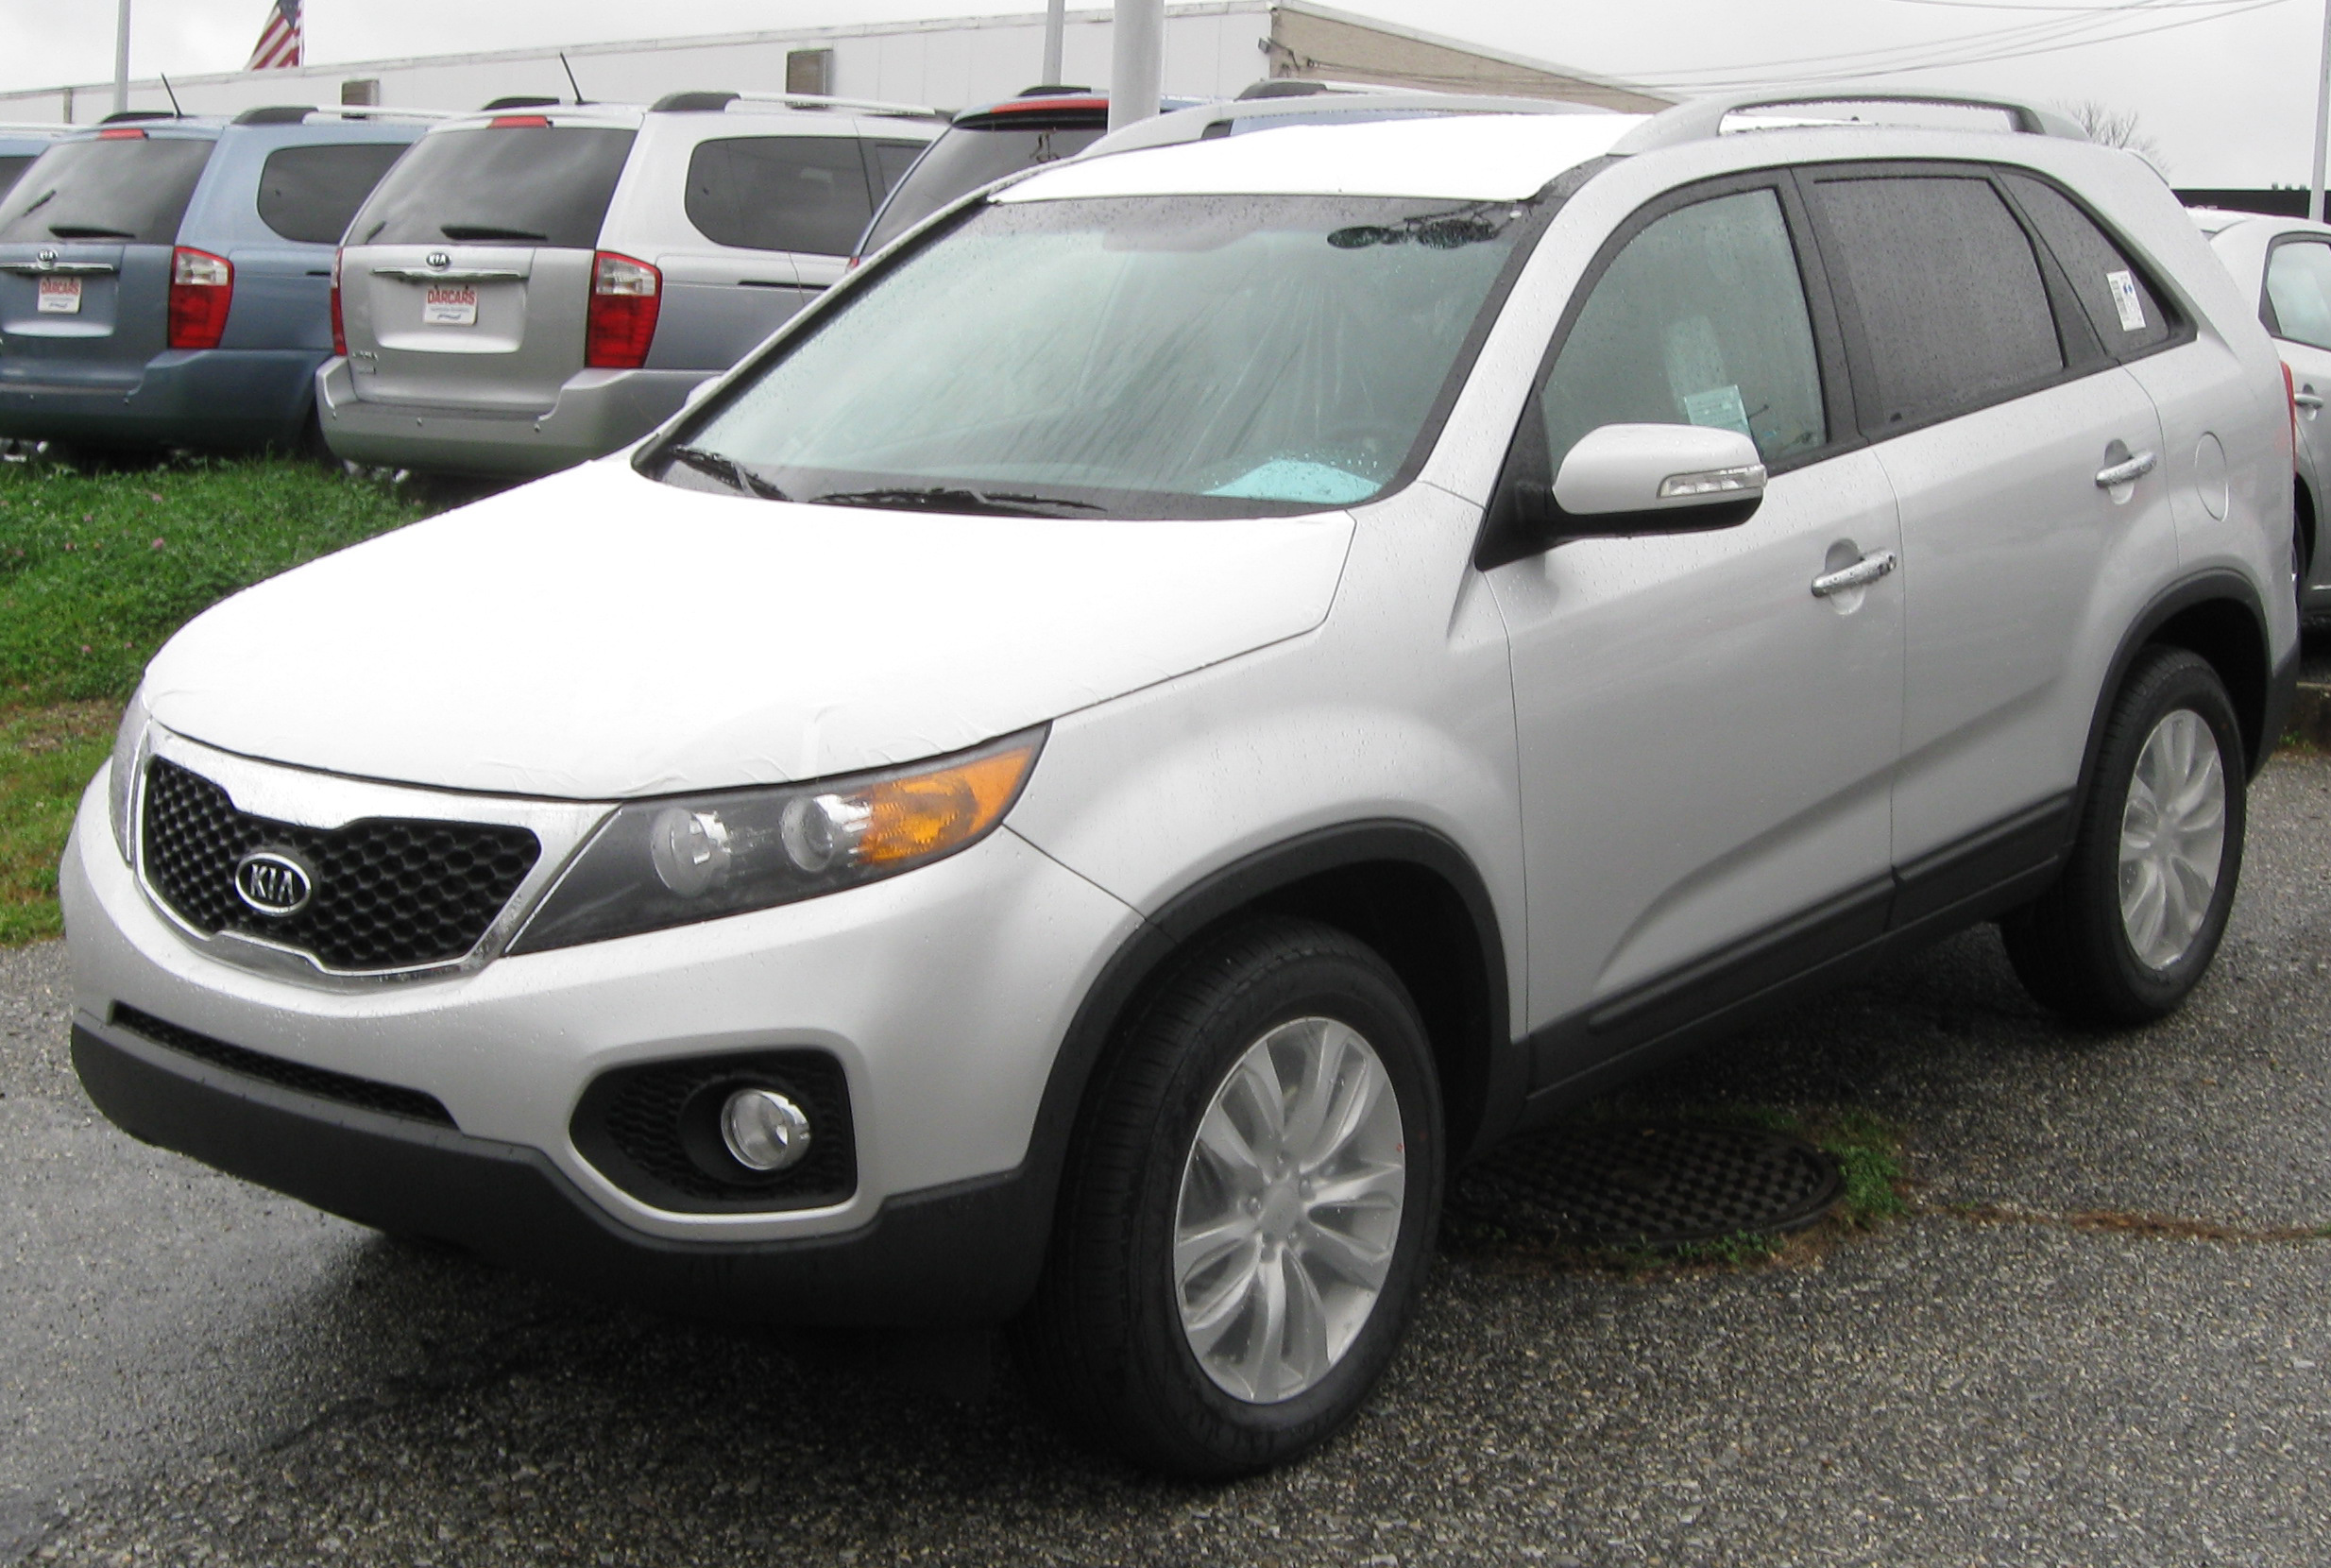 2011 kia sorento ii pictures information and specs auto. Black Bedroom Furniture Sets. Home Design Ideas